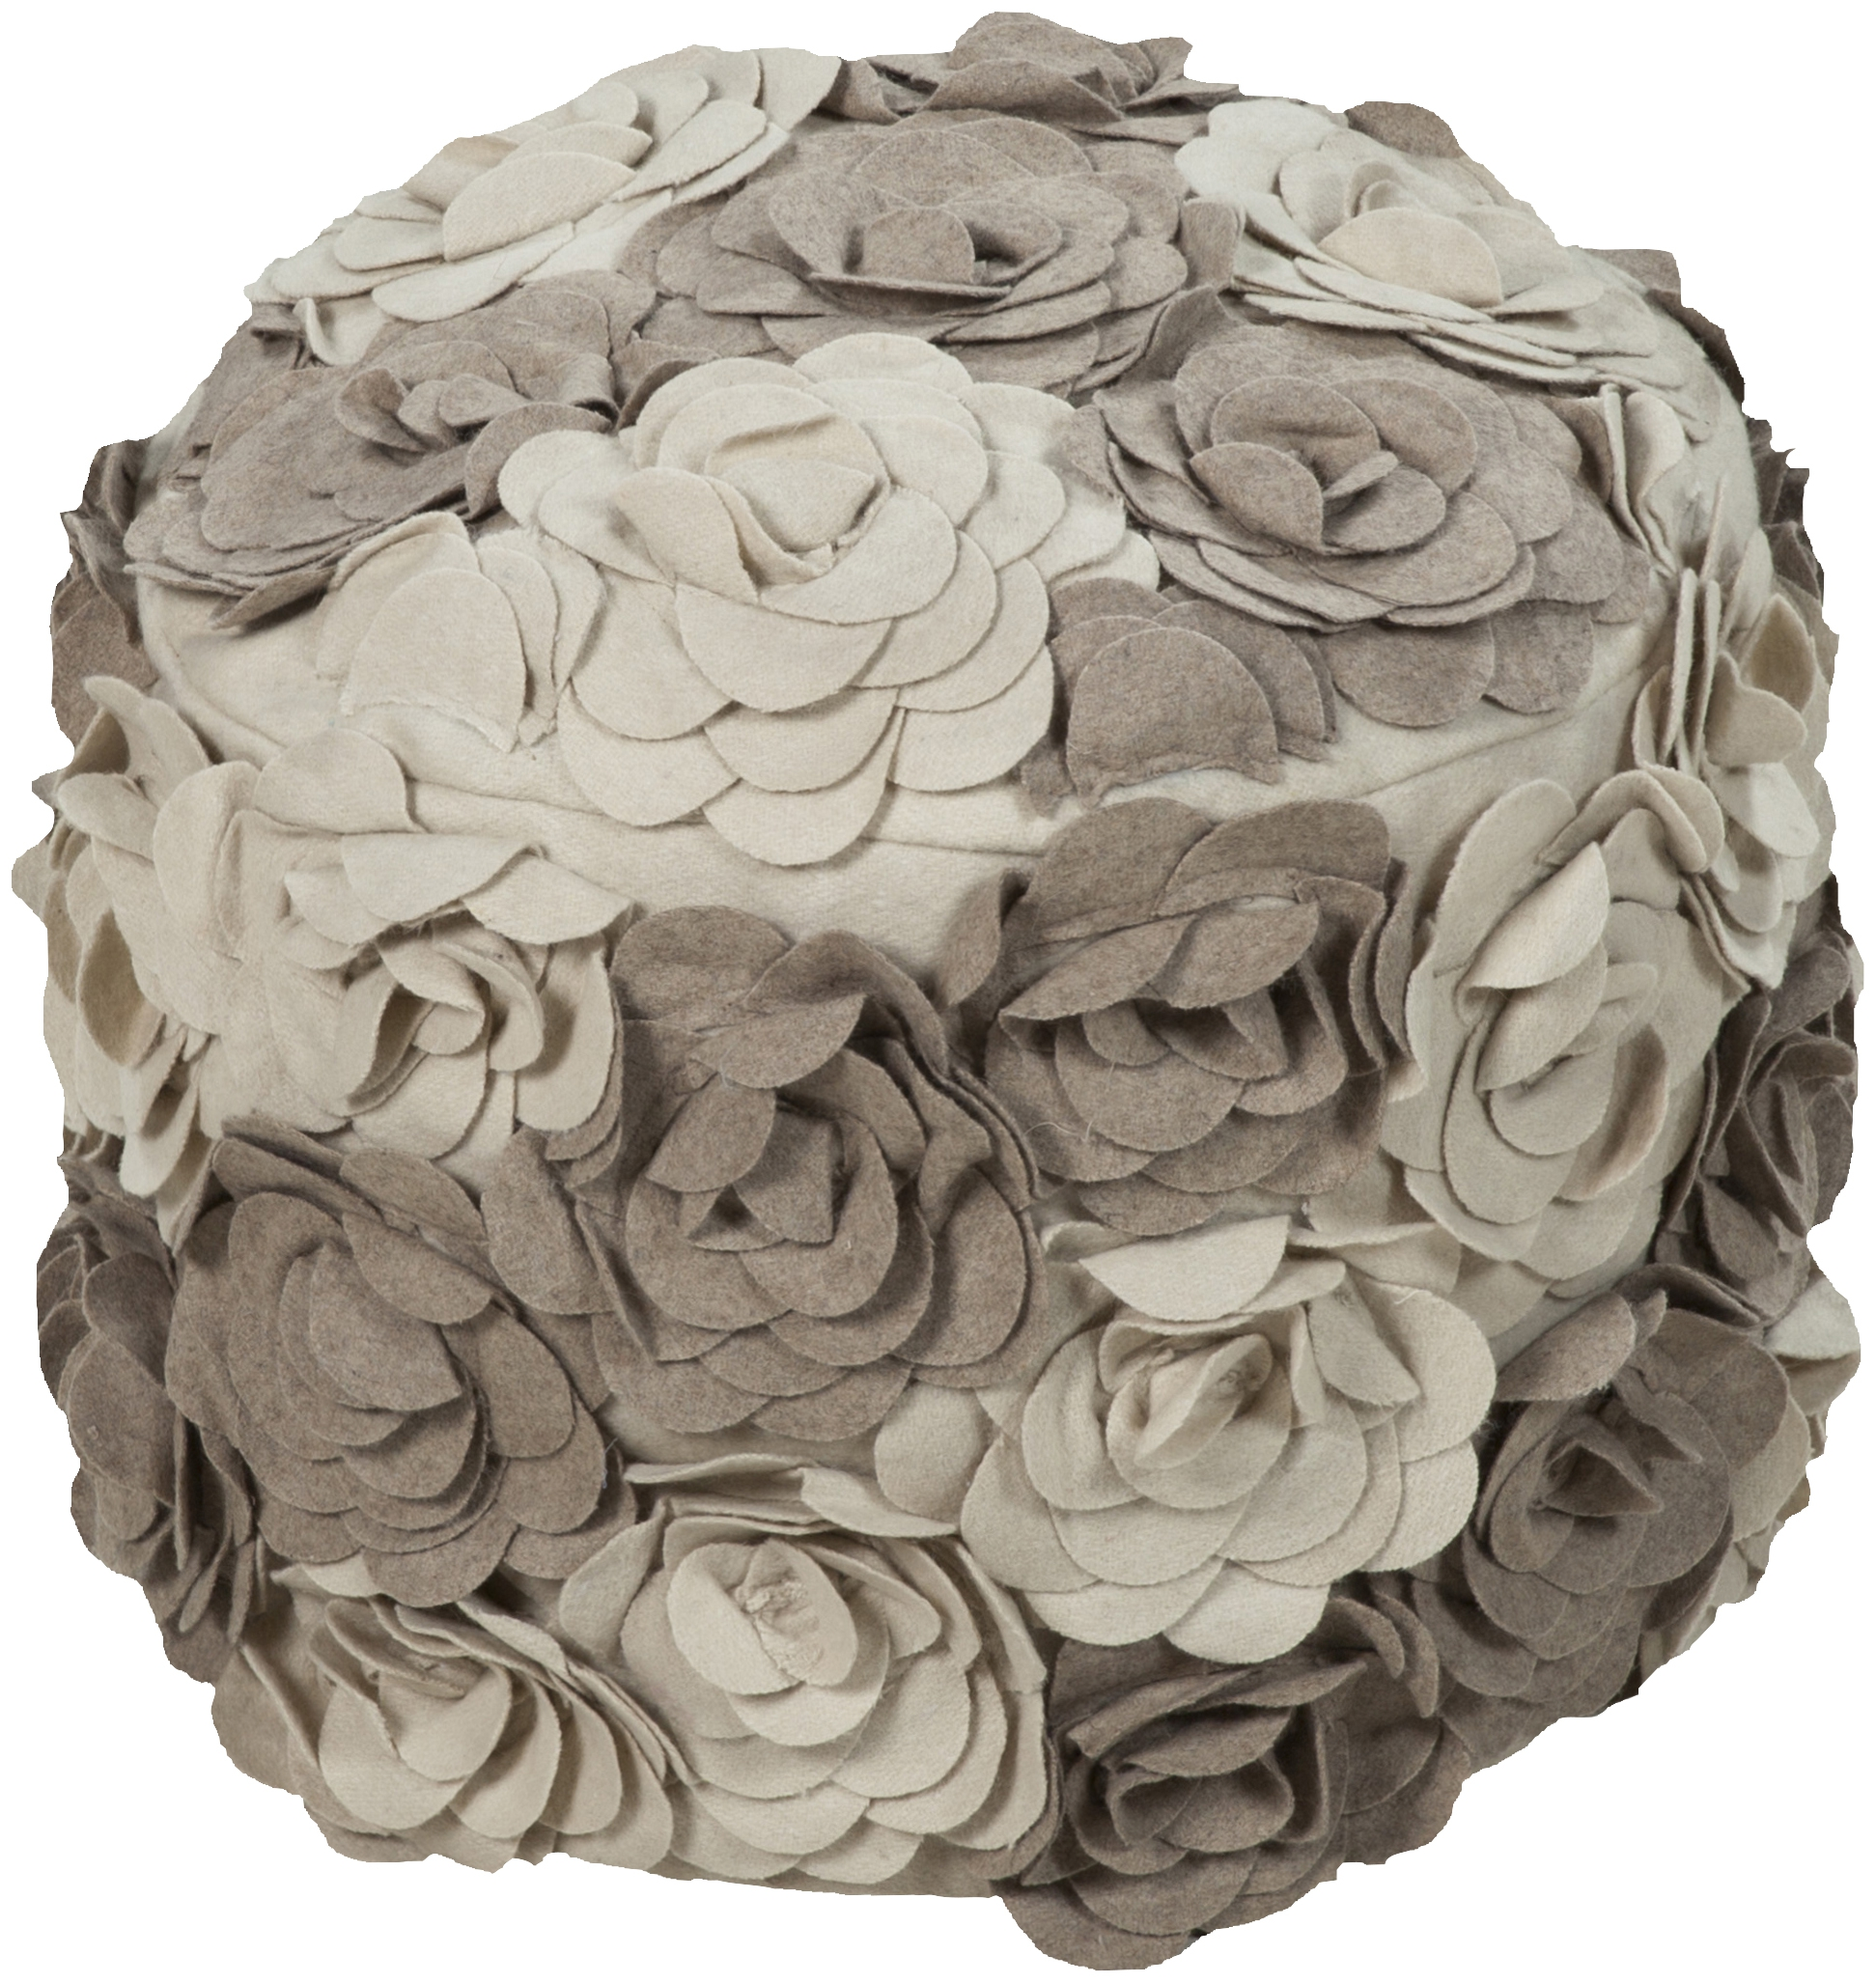 surya poufs taupe beige wool pouf 18x18x14 the classy home. Black Bedroom Furniture Sets. Home Design Ideas